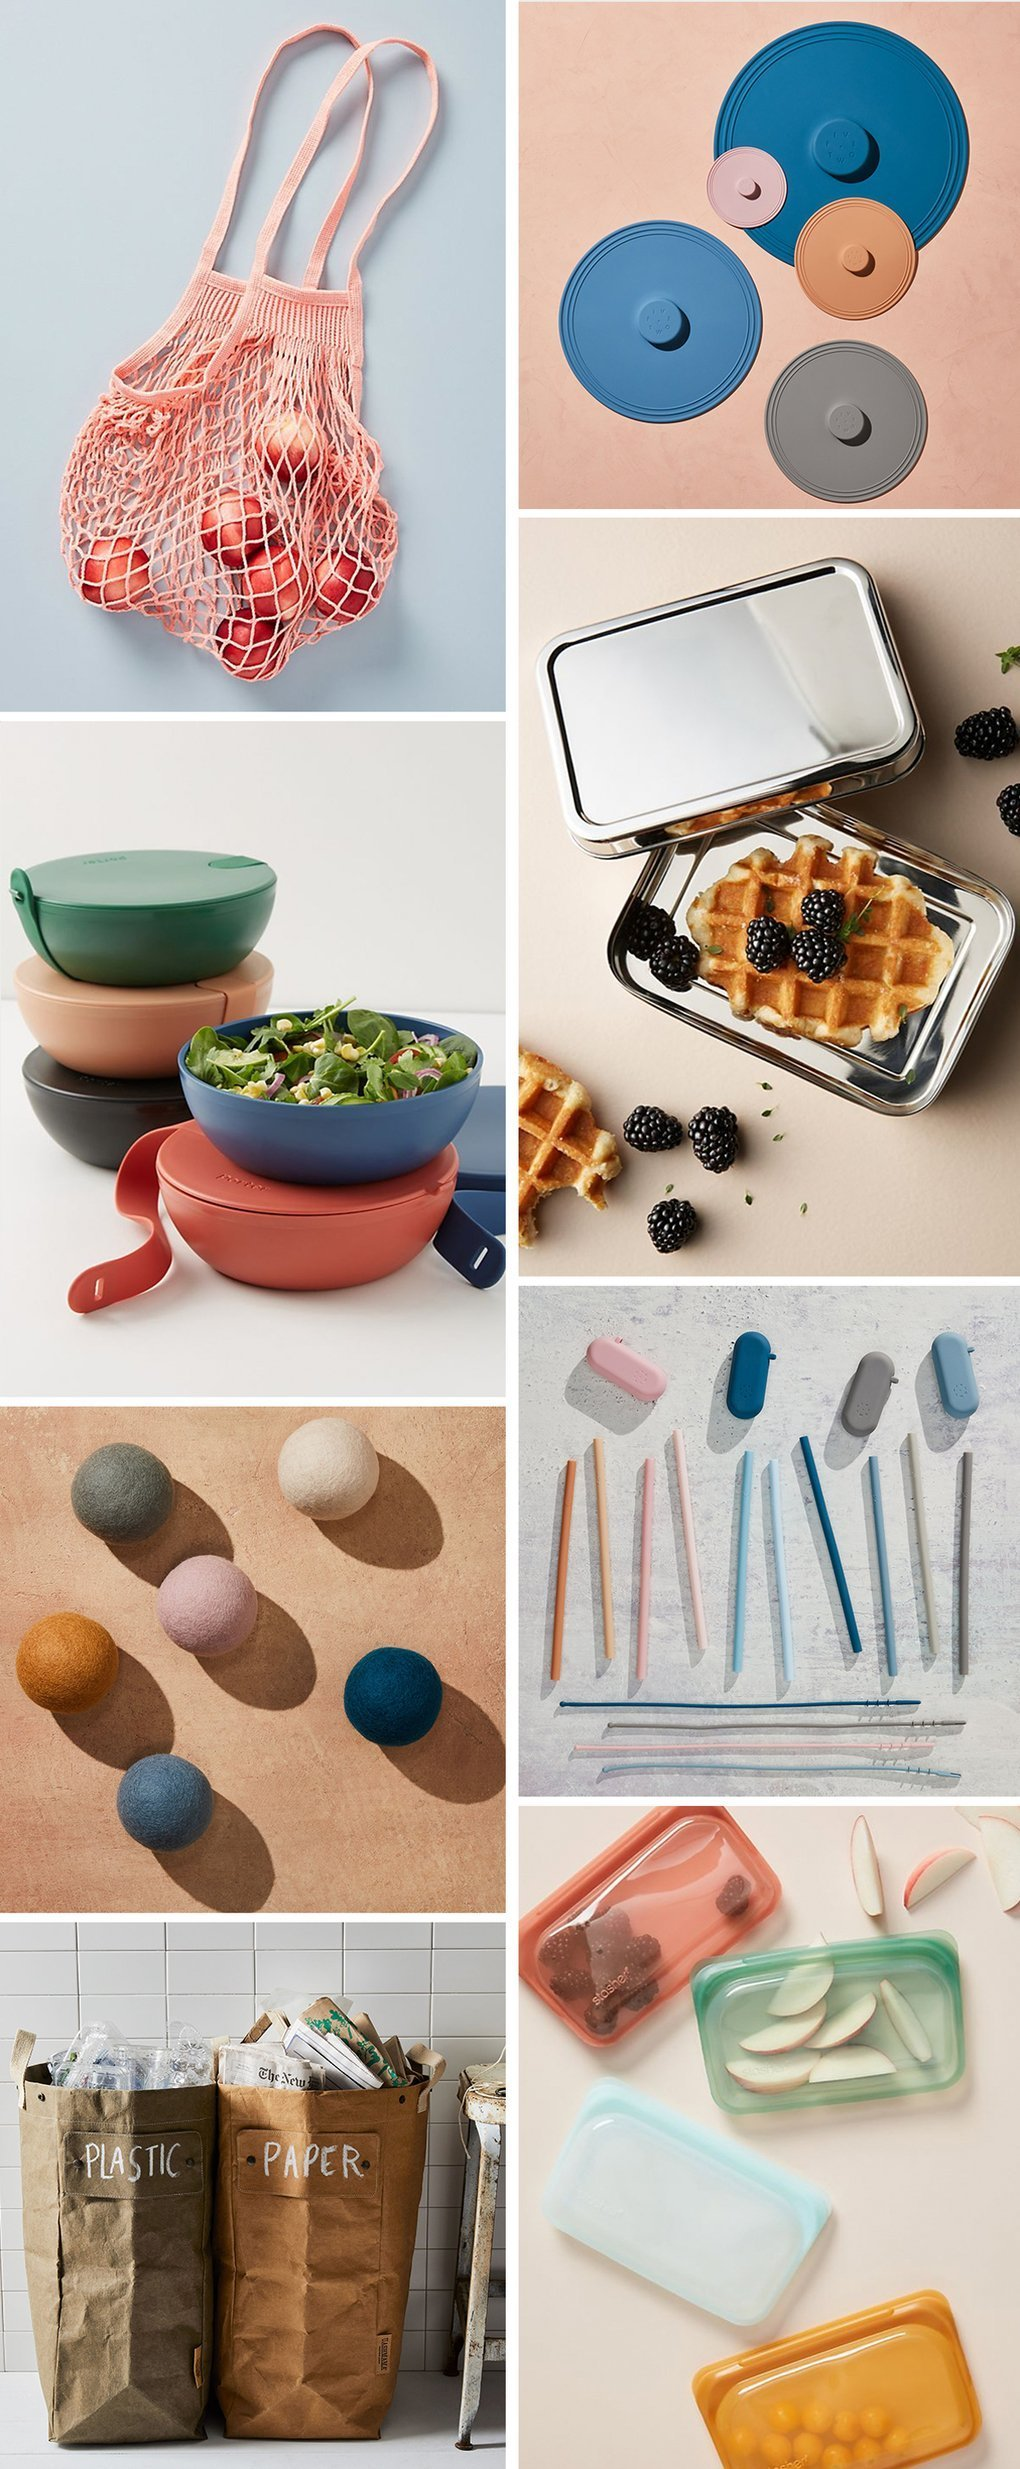 , 24 Cute Reusable and Eco Friendly Products to Replace the Single Use Stuff, The Circular Economy